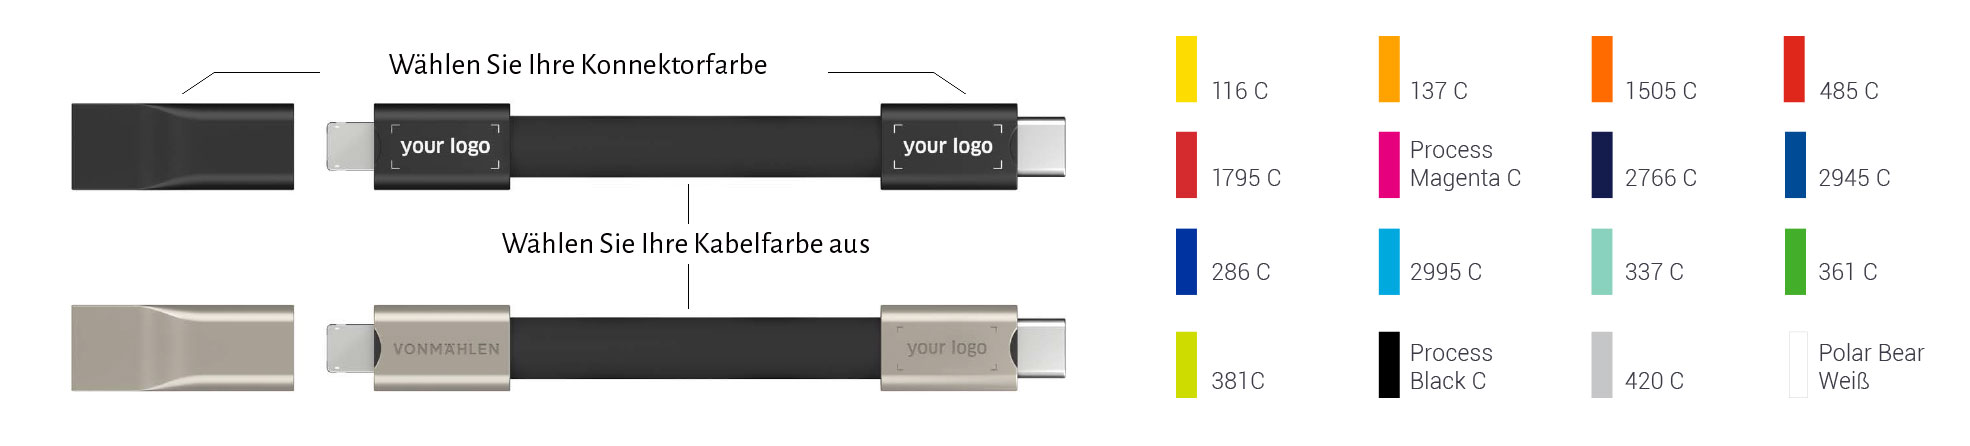 5in1-Ladekabel-COLORCOLLECTION-mit-logo